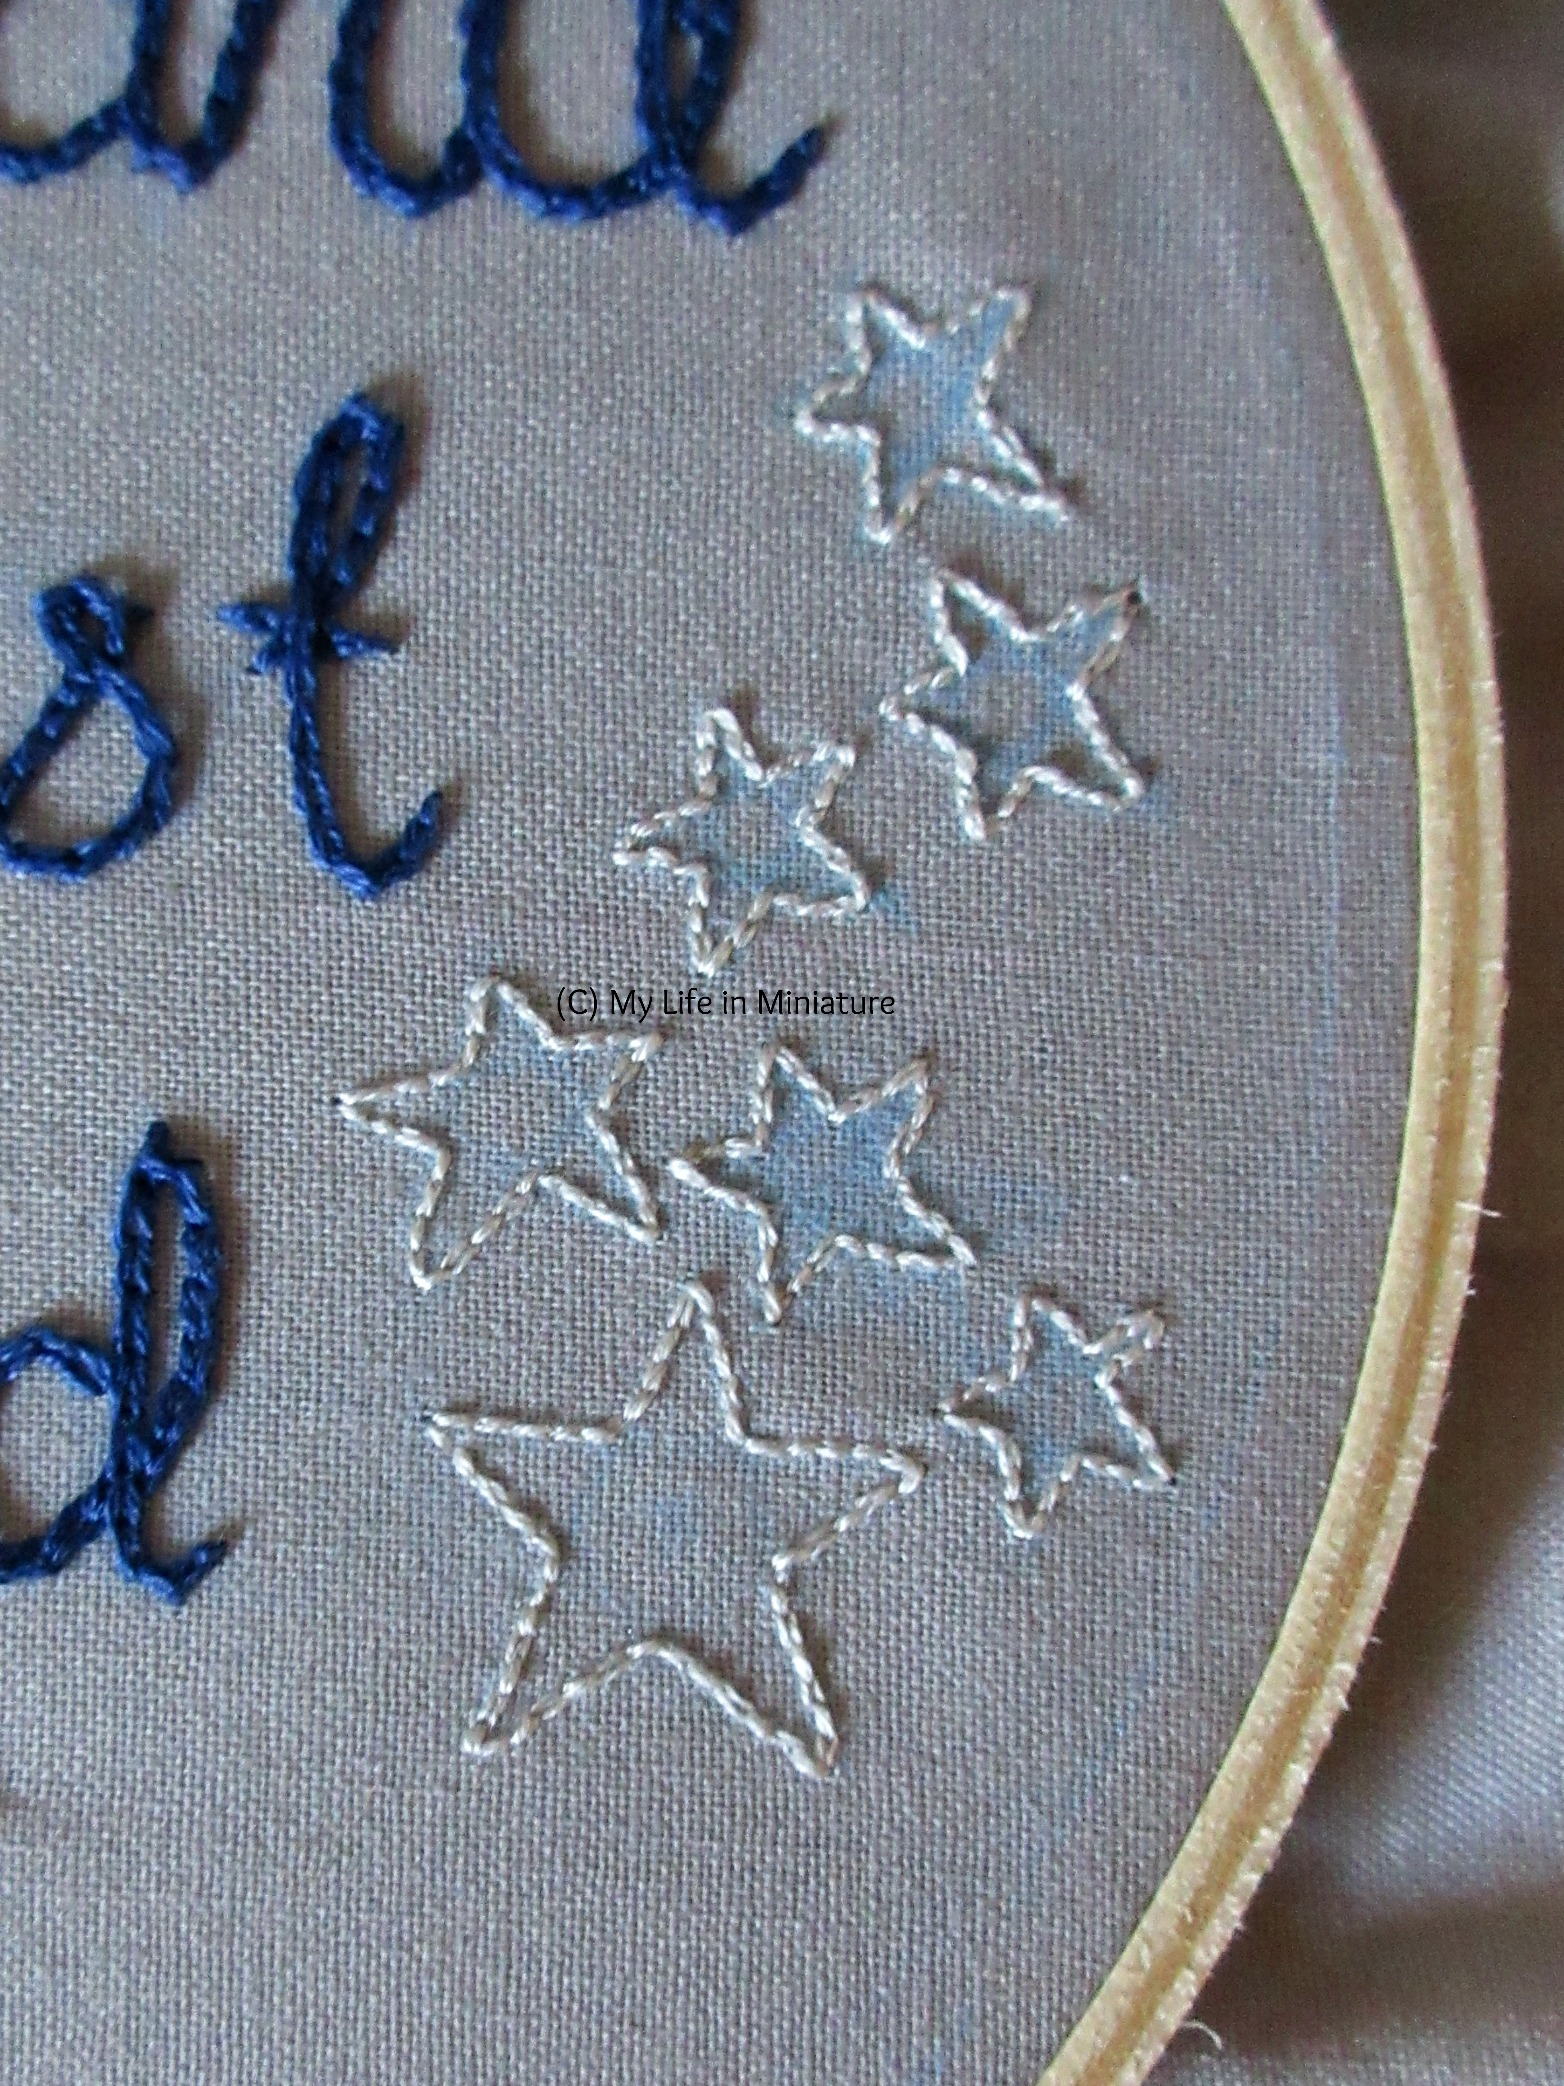 The right hand side of the grey-fabric-filled embroidery hoop is visible. Seven stars are outlined in backstitch in silver, scattered in a loosely vertical manner.